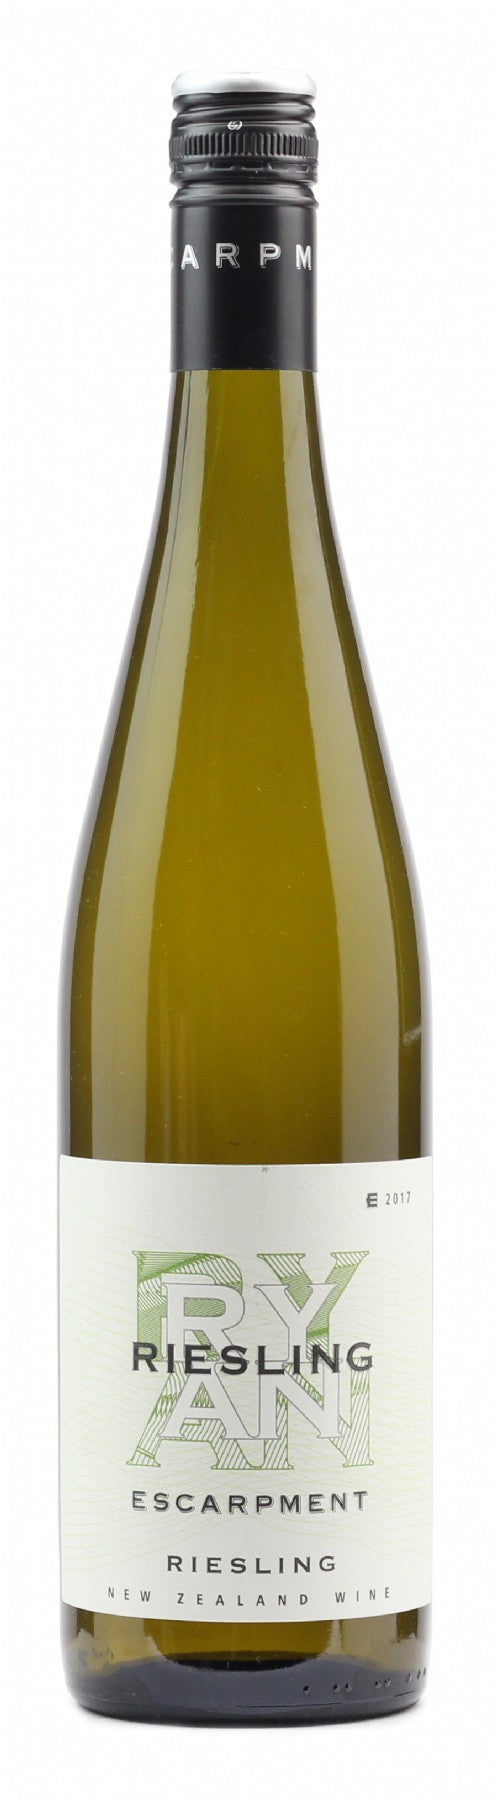 ESCARPMENT RIESLING RYAN 17